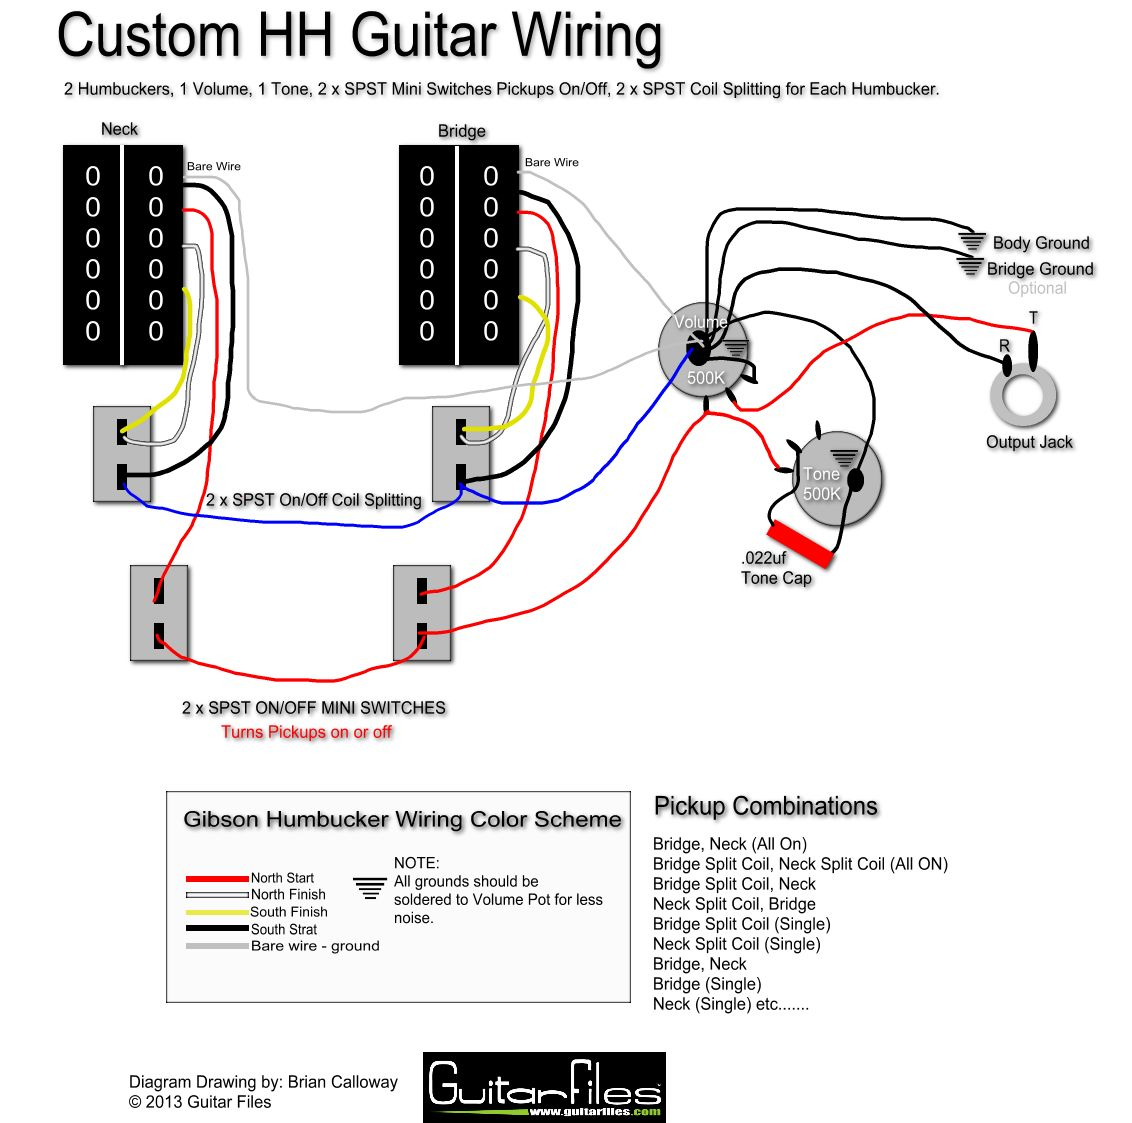 Custom Hh Wiring Diagram With Spst Coil Splitting And Switching Active Electric Bass Diagrams Guitar Pickups Building